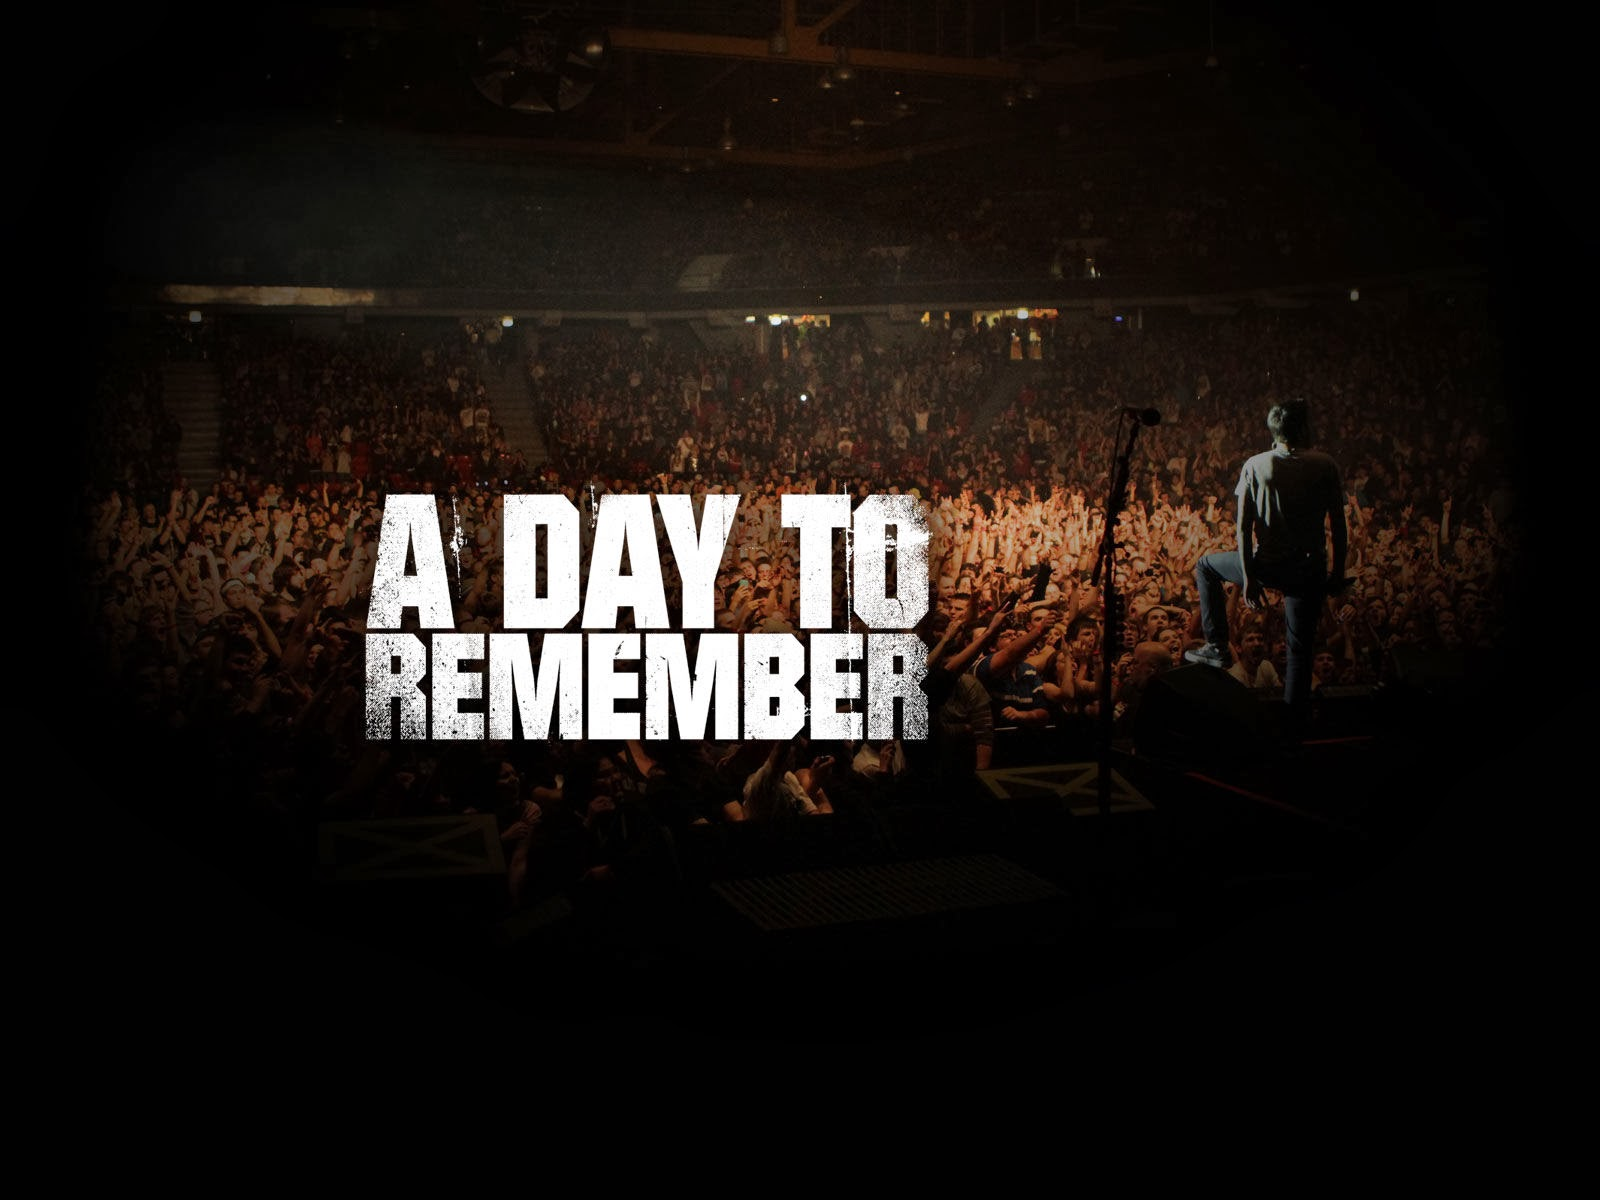 nelena rockgod A Day To Remember Wallpapers 1600x1200